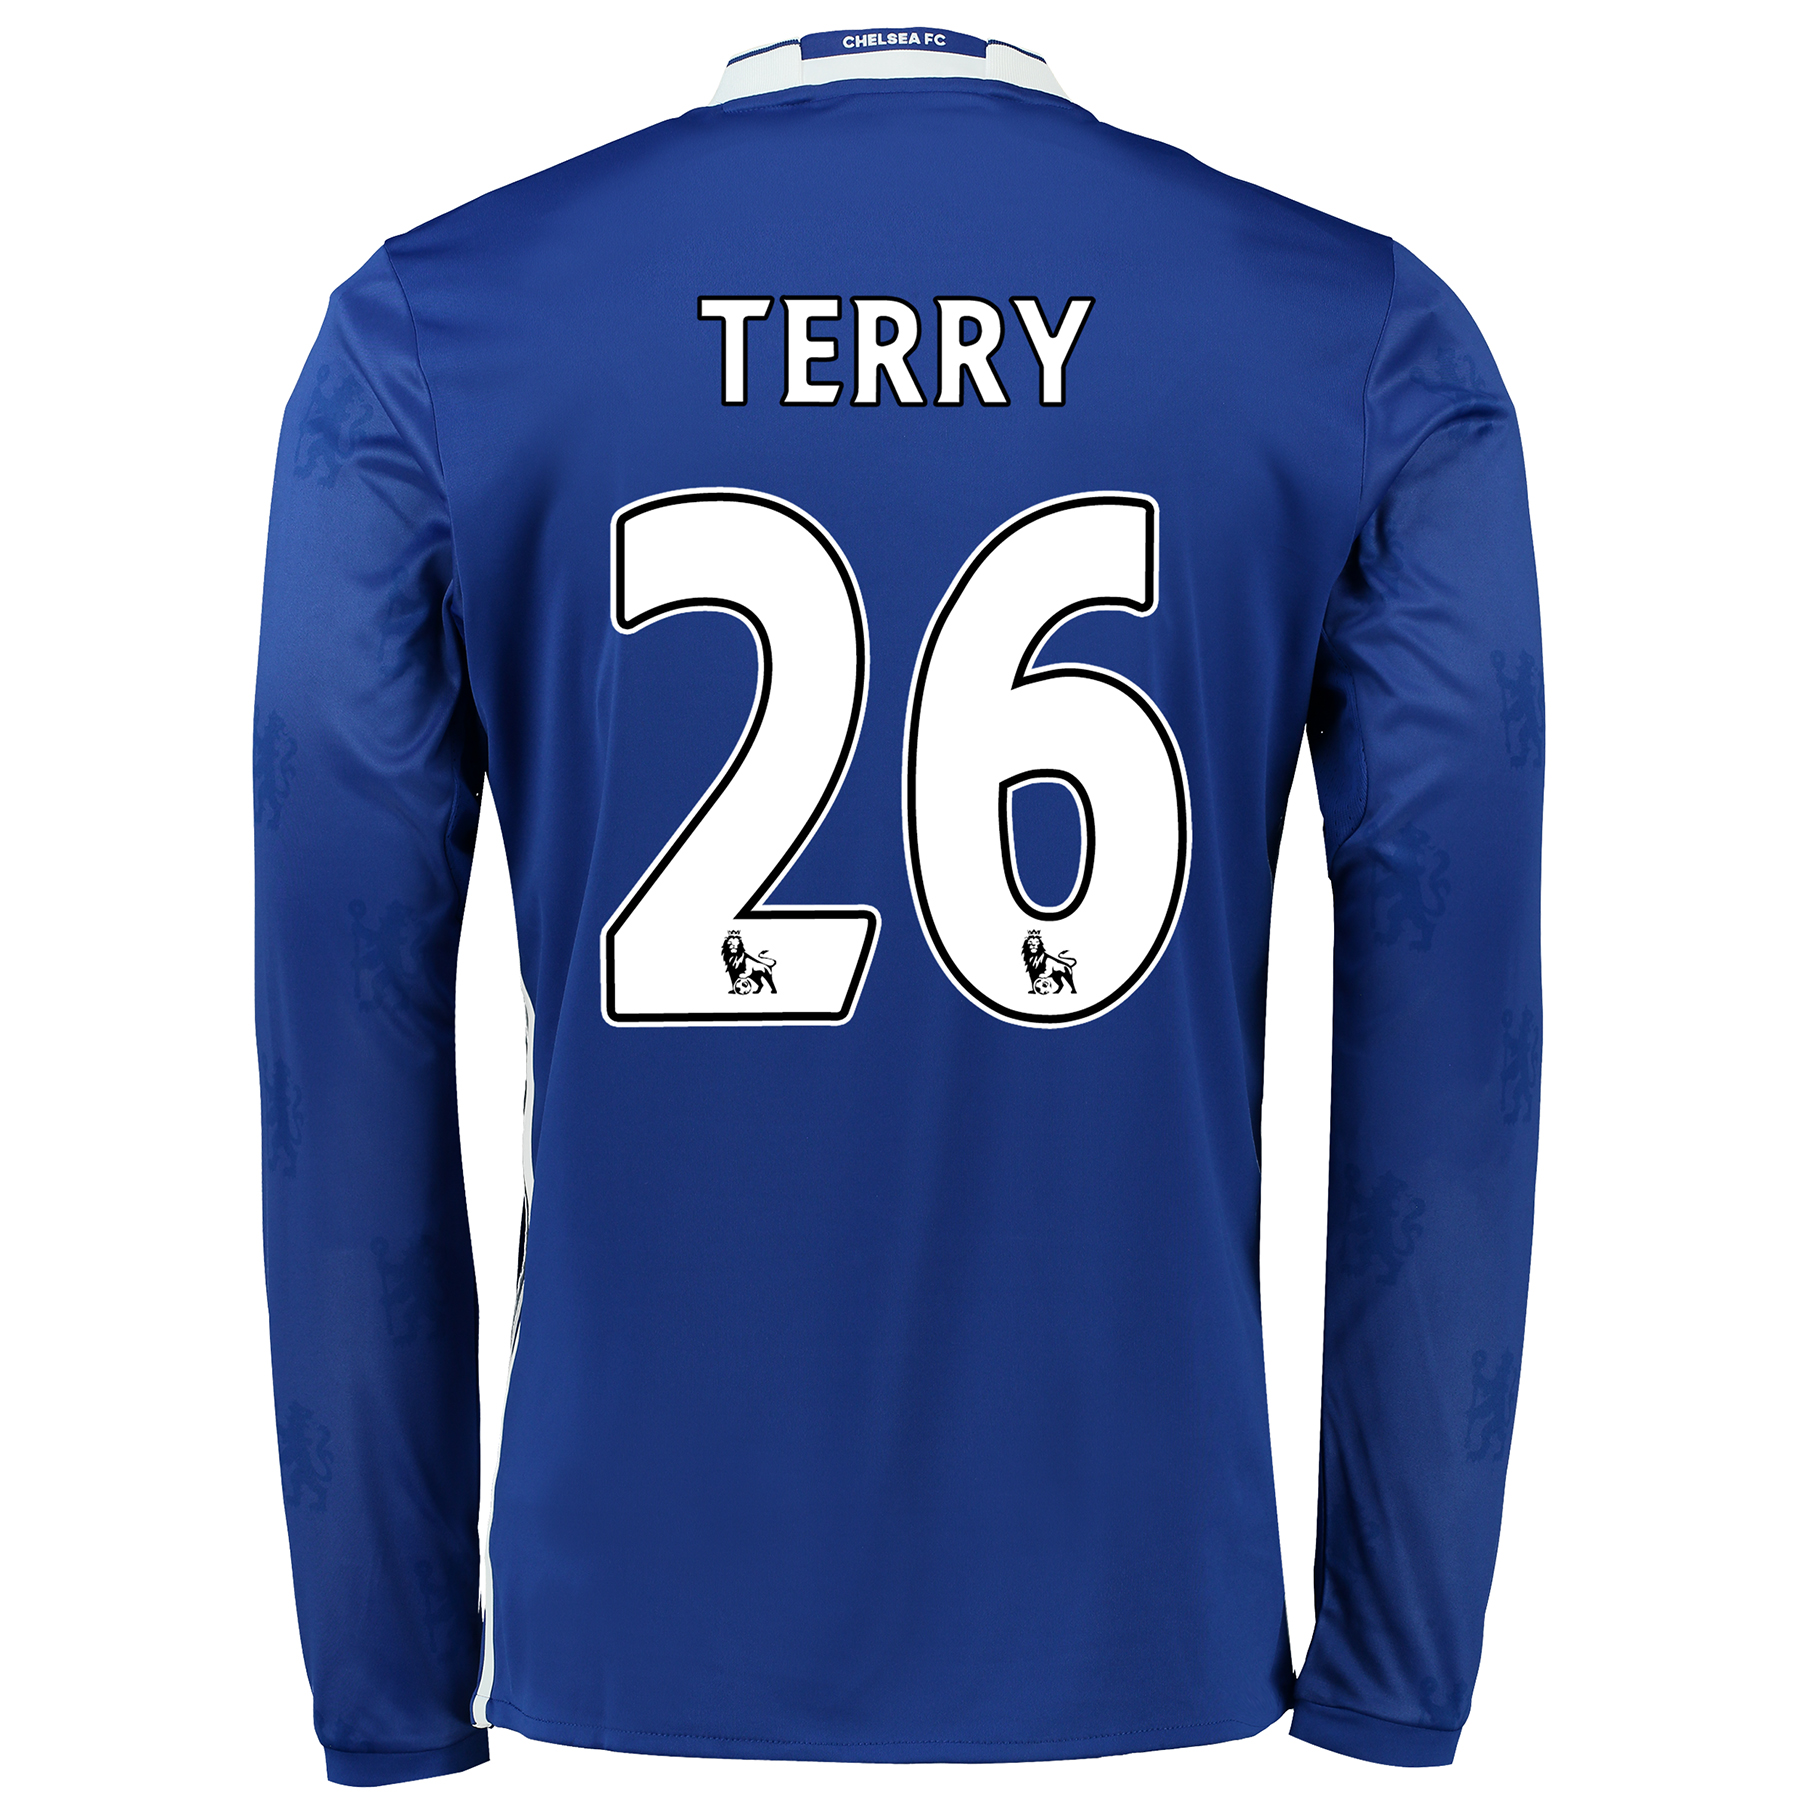 Chelsea Home Shirt 2016-17 - Kids - Long Sleeve with Terry 26 printing